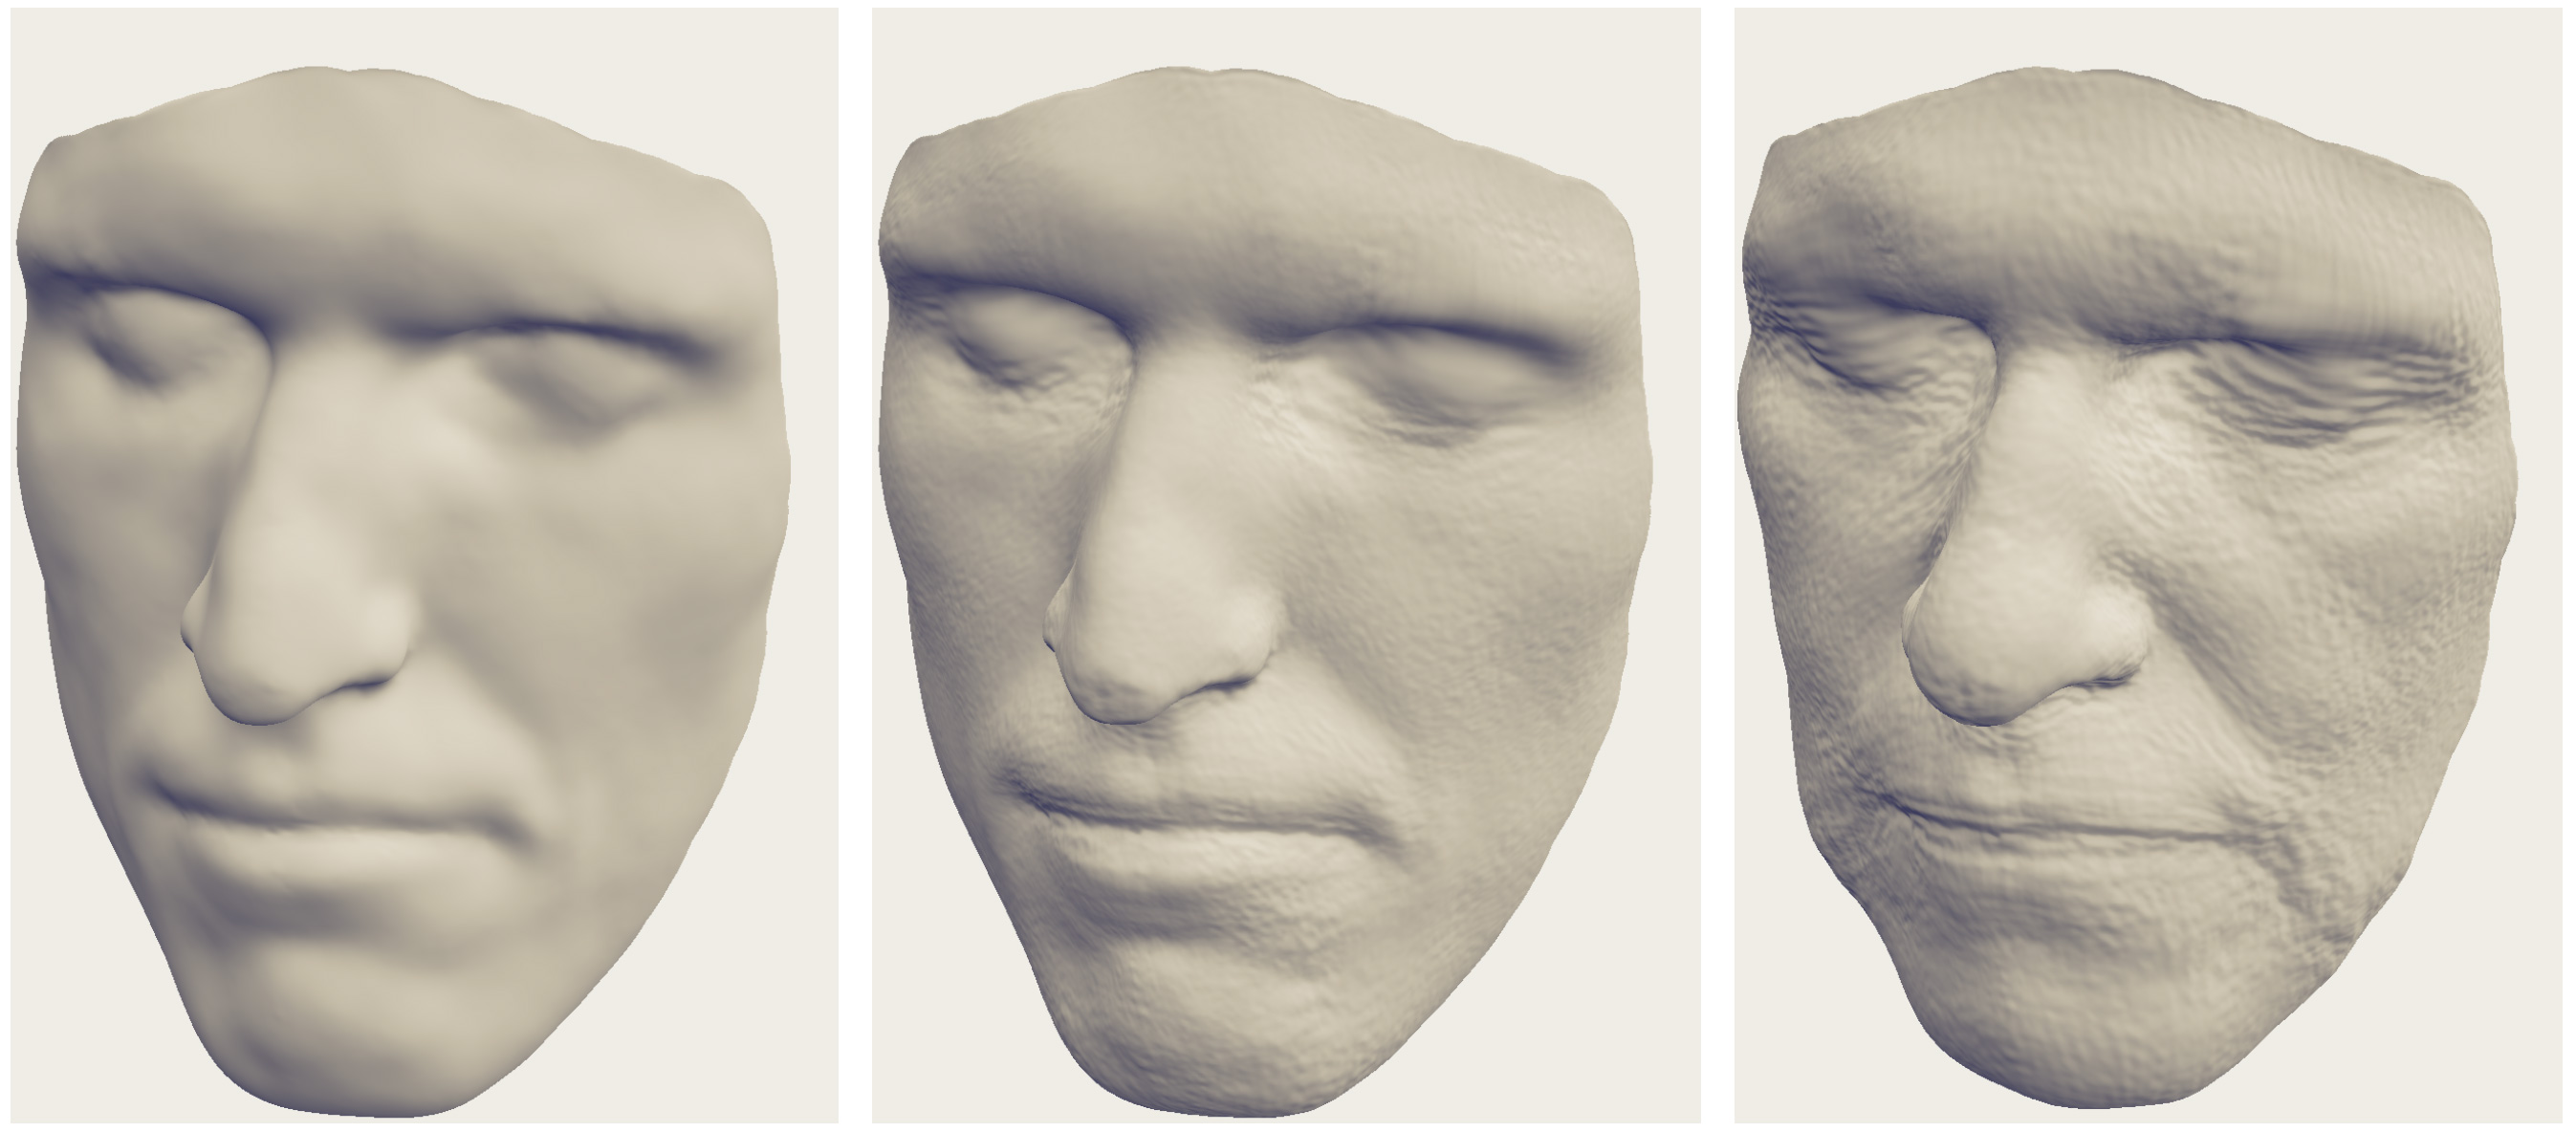 A Statistical Model for Synthesis of Detailed Facial Geometry